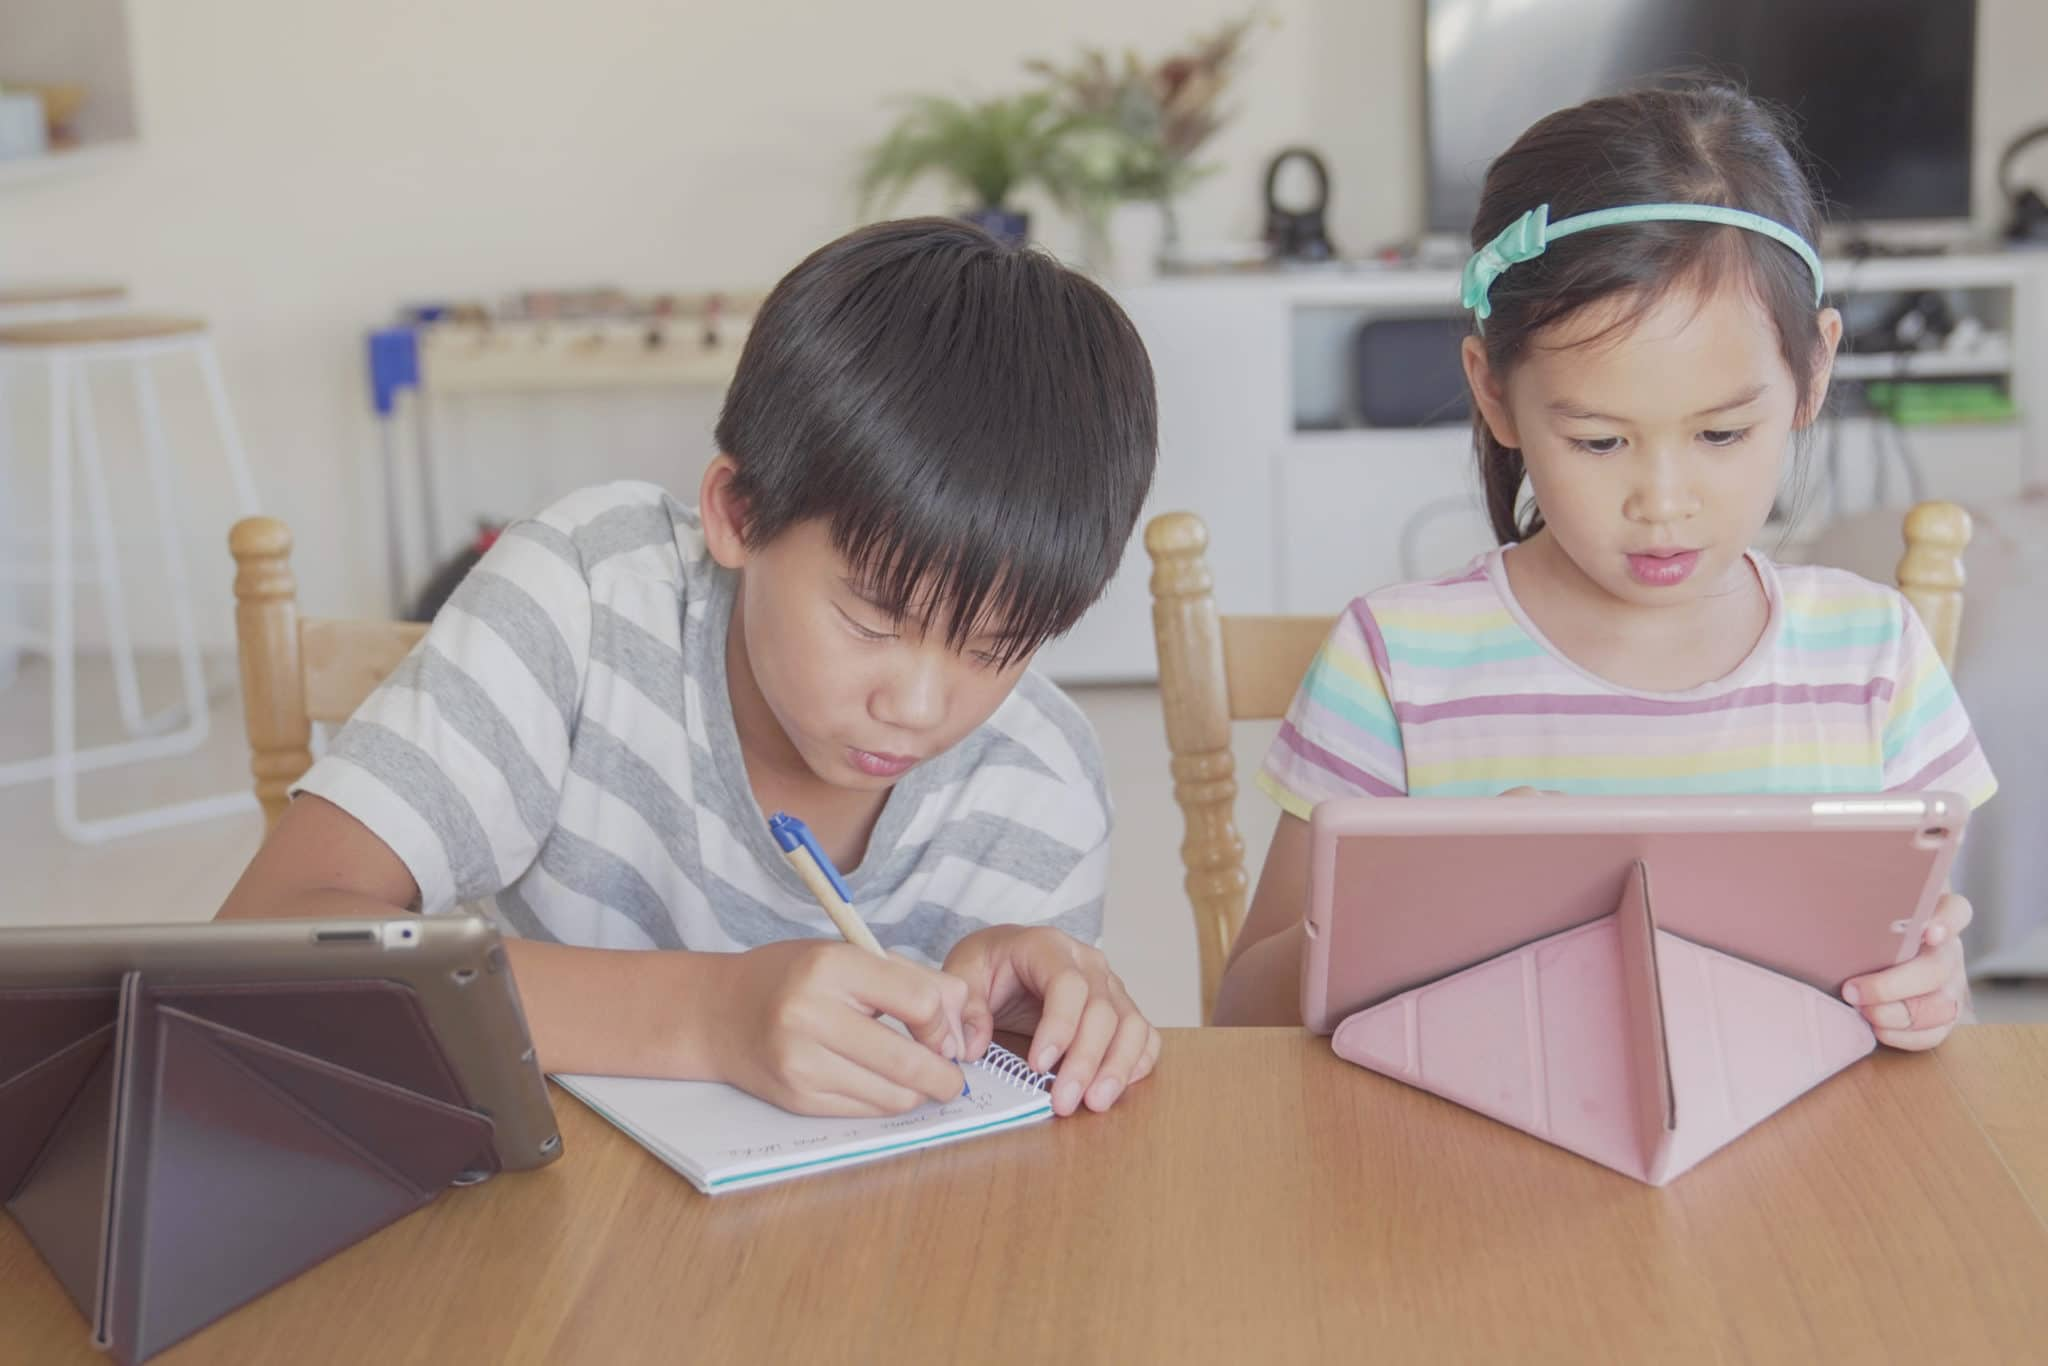 two siblings each have access to technology